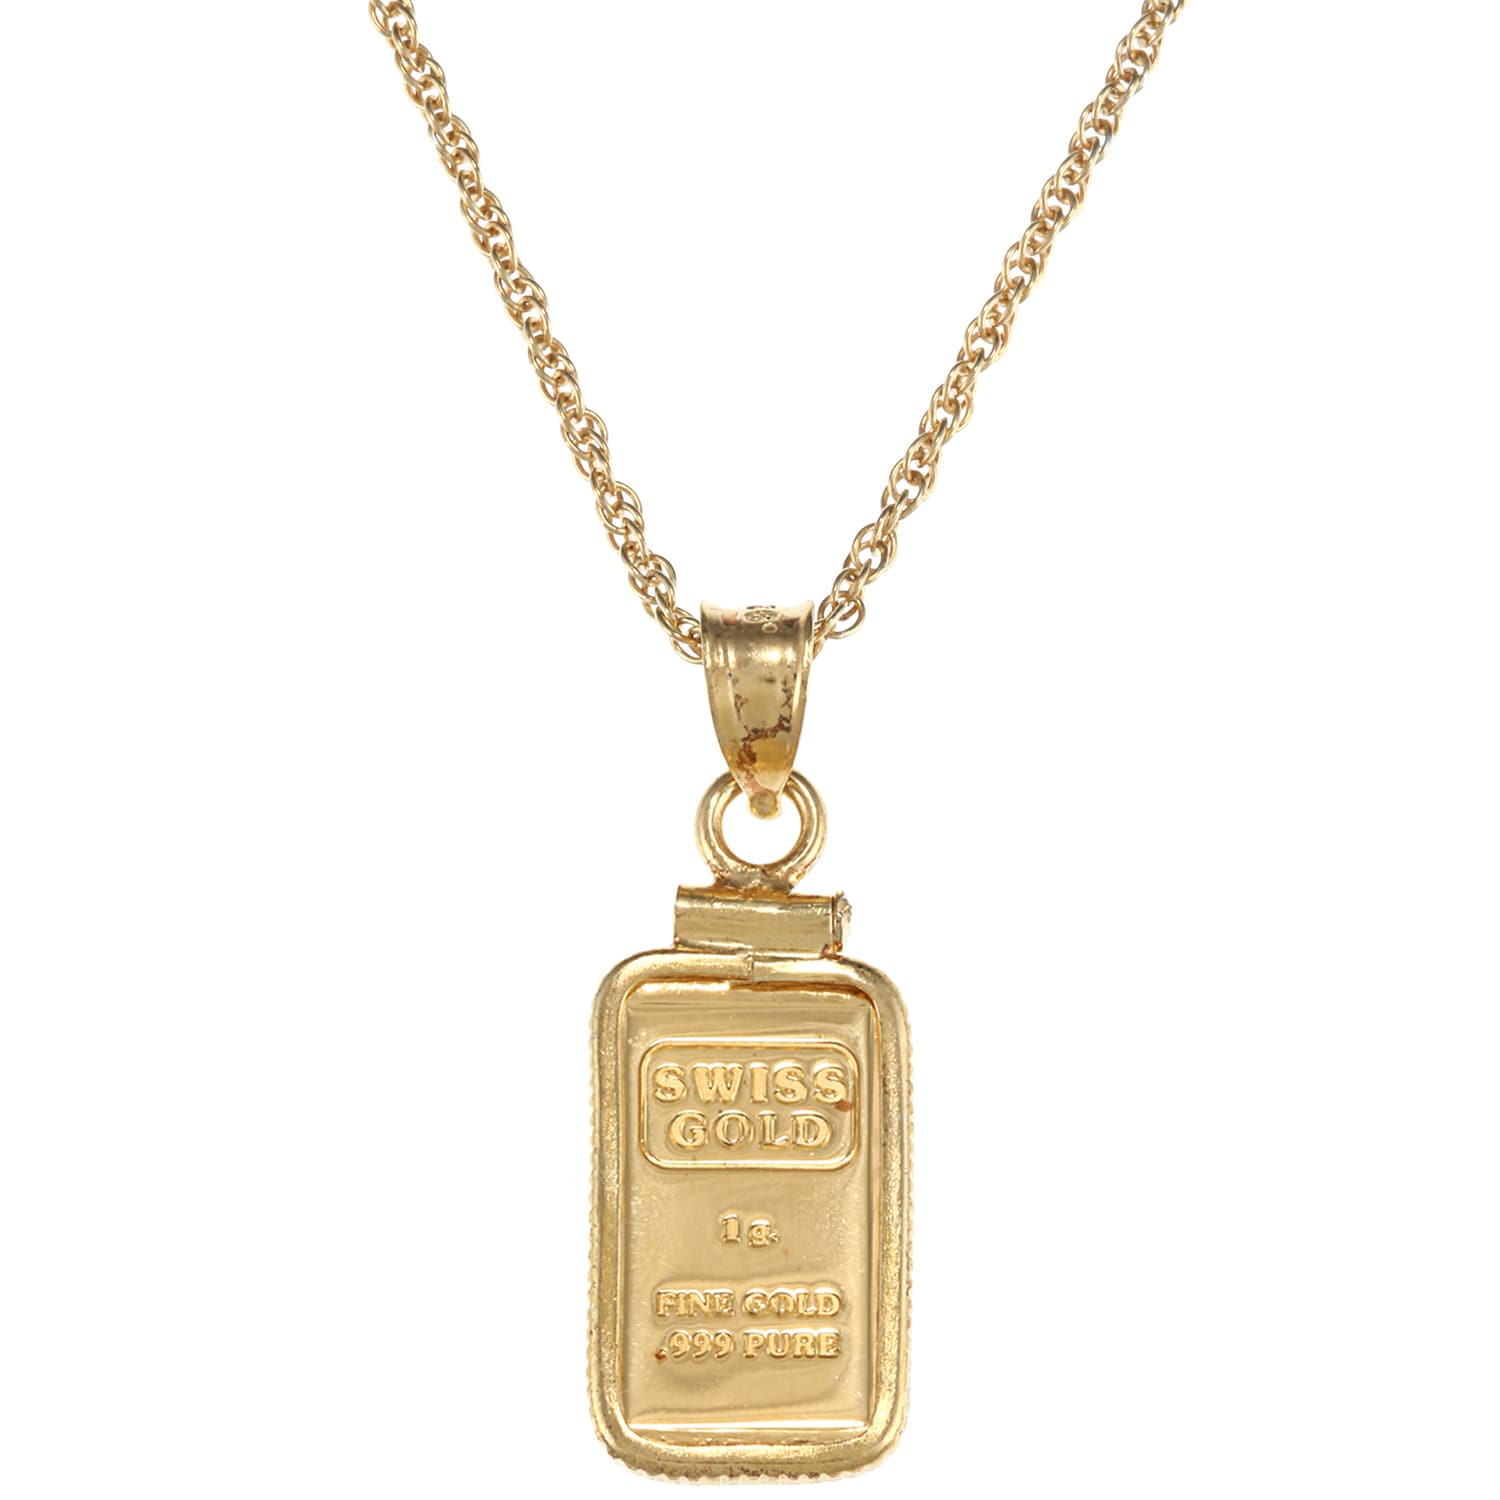 American coin treasures 1 gram gold ingot pendant necklace free american coin treasures 1 gram gold ingot pendant necklace free shipping today overstock 10828854 mozeypictures Choice Image